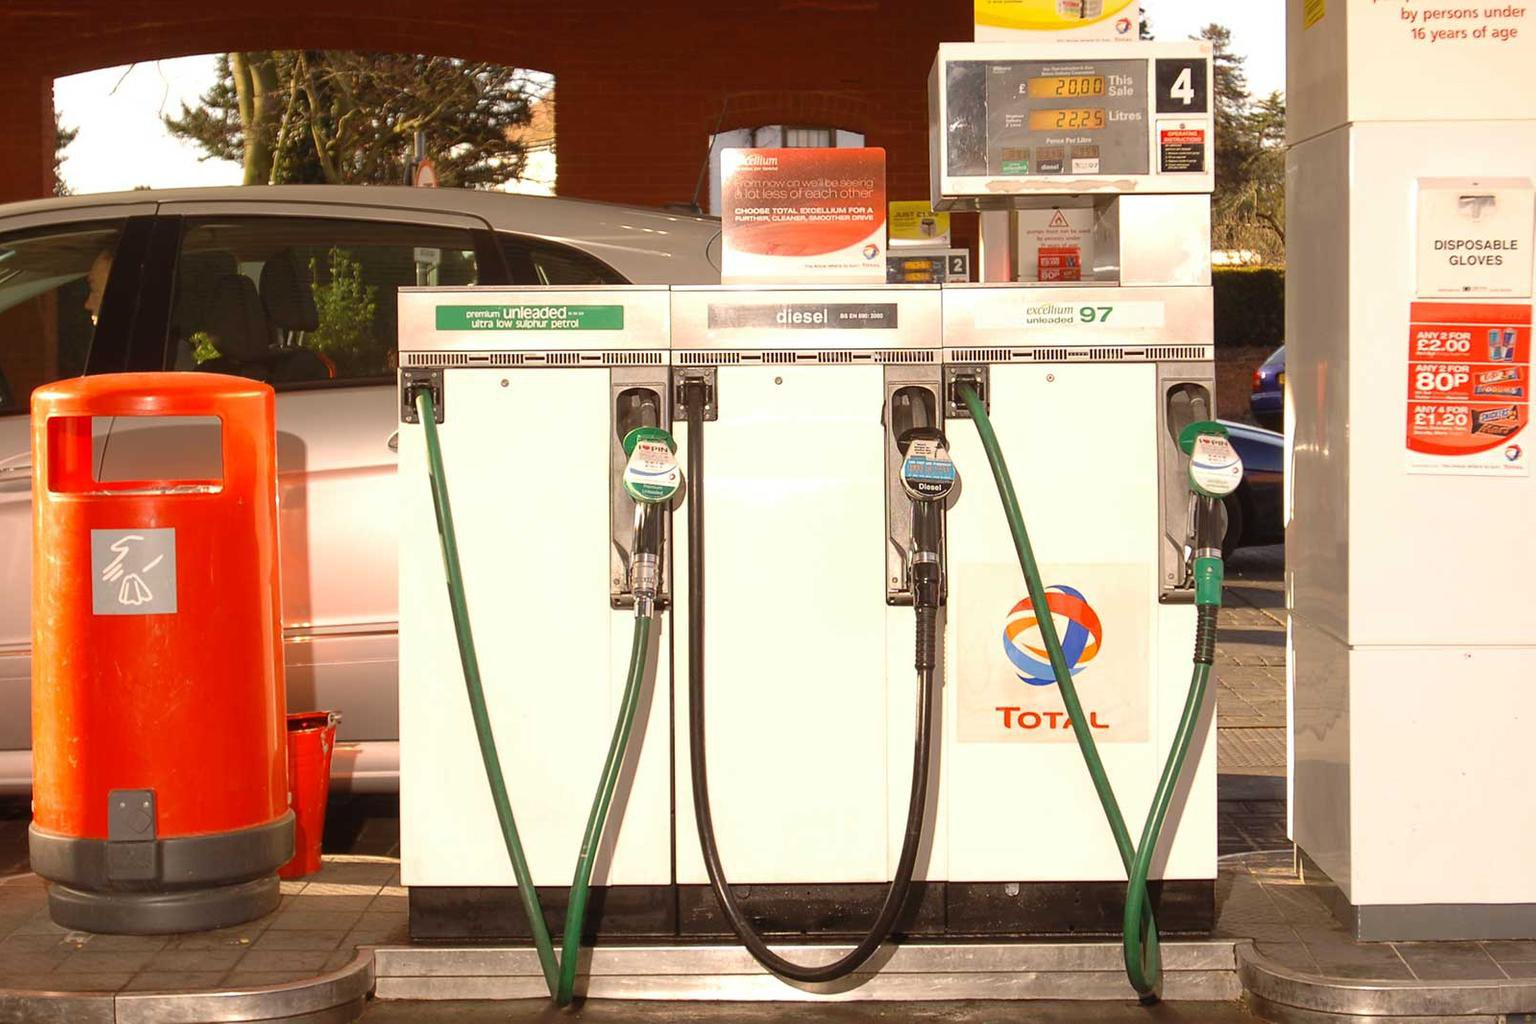 UK diesel prices are the highest in Europe